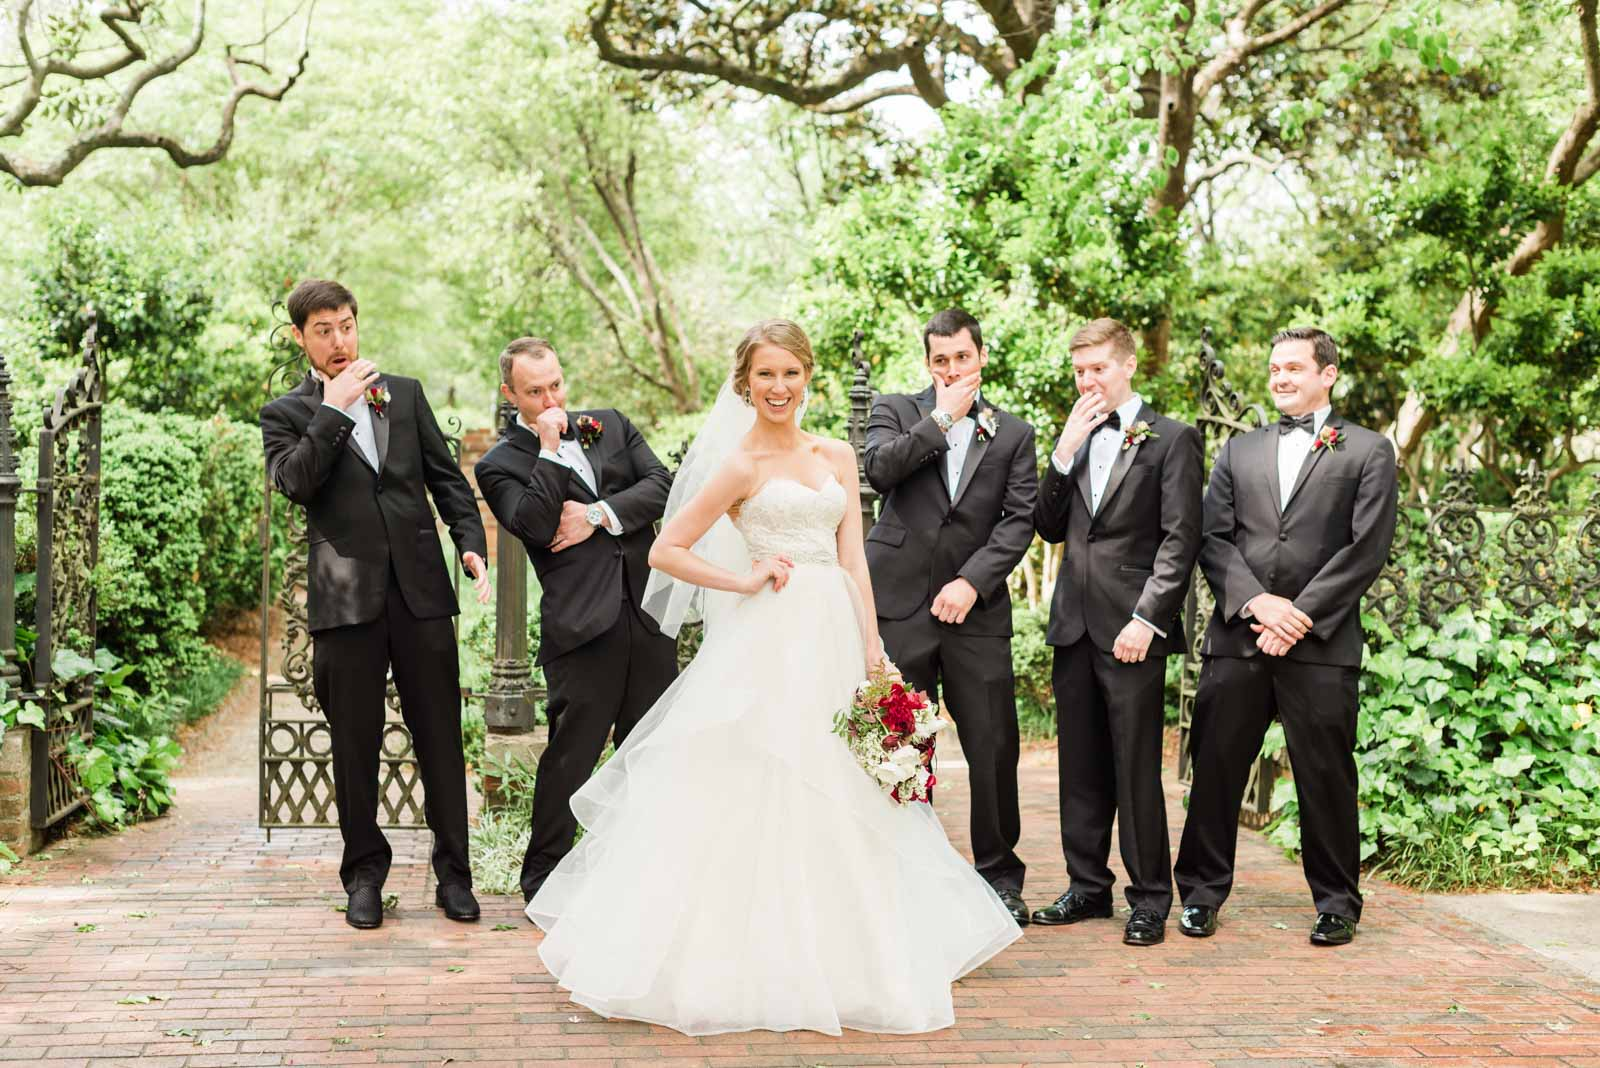 South Carolina Lace House Wedding Markie Walden Photography-39.jpg